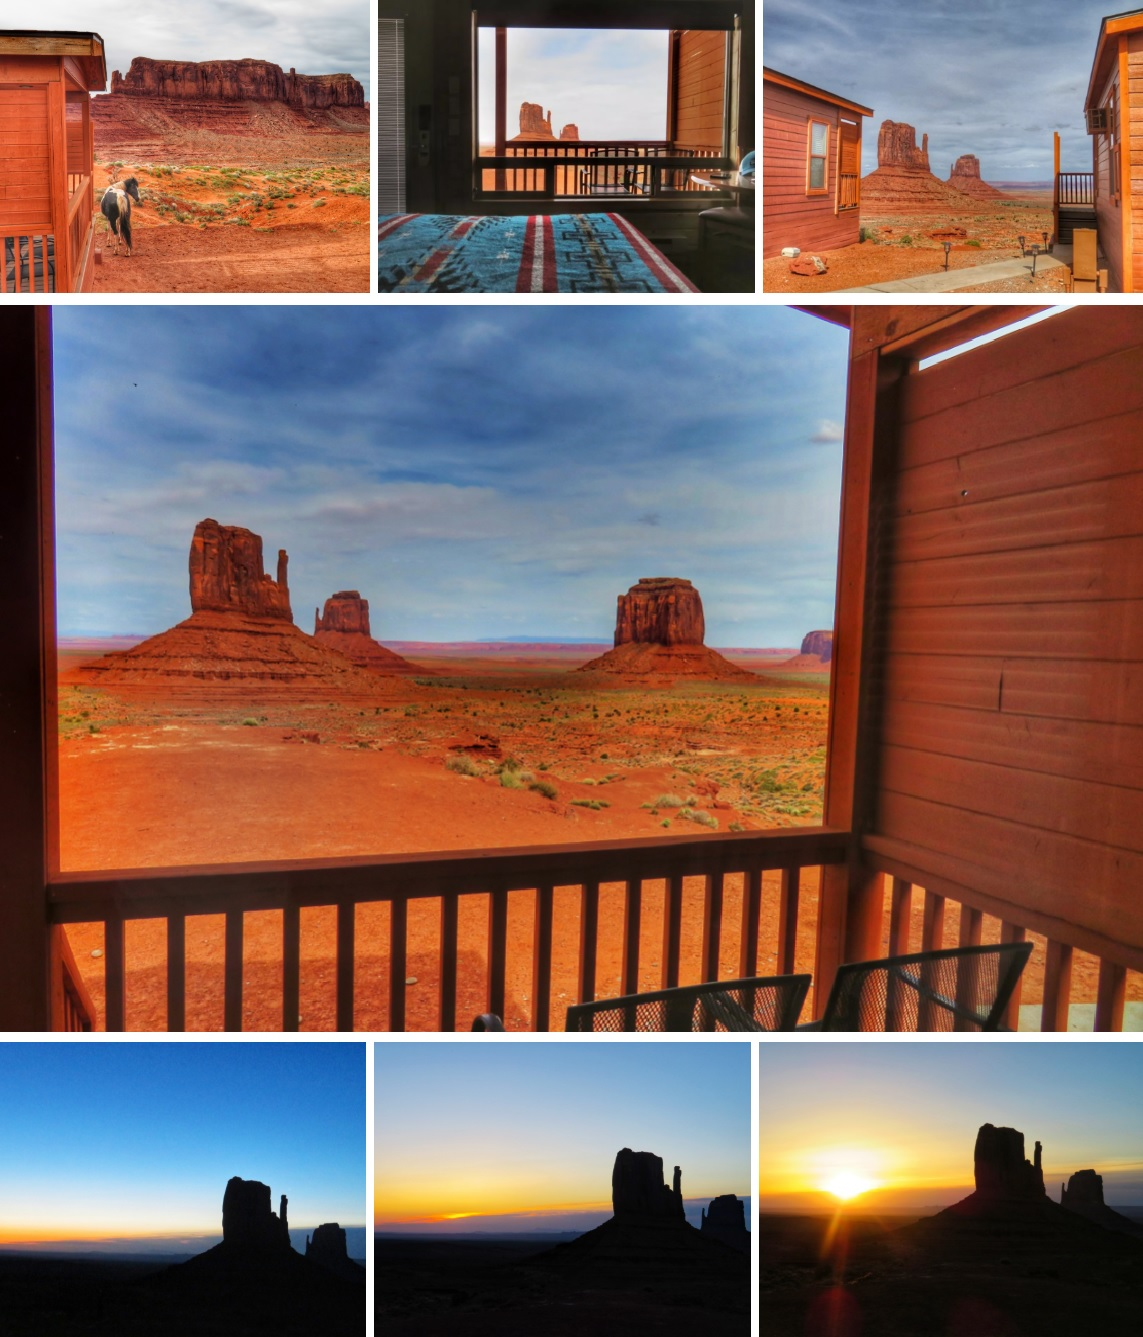 dove dormire vicino alla Monument Valley